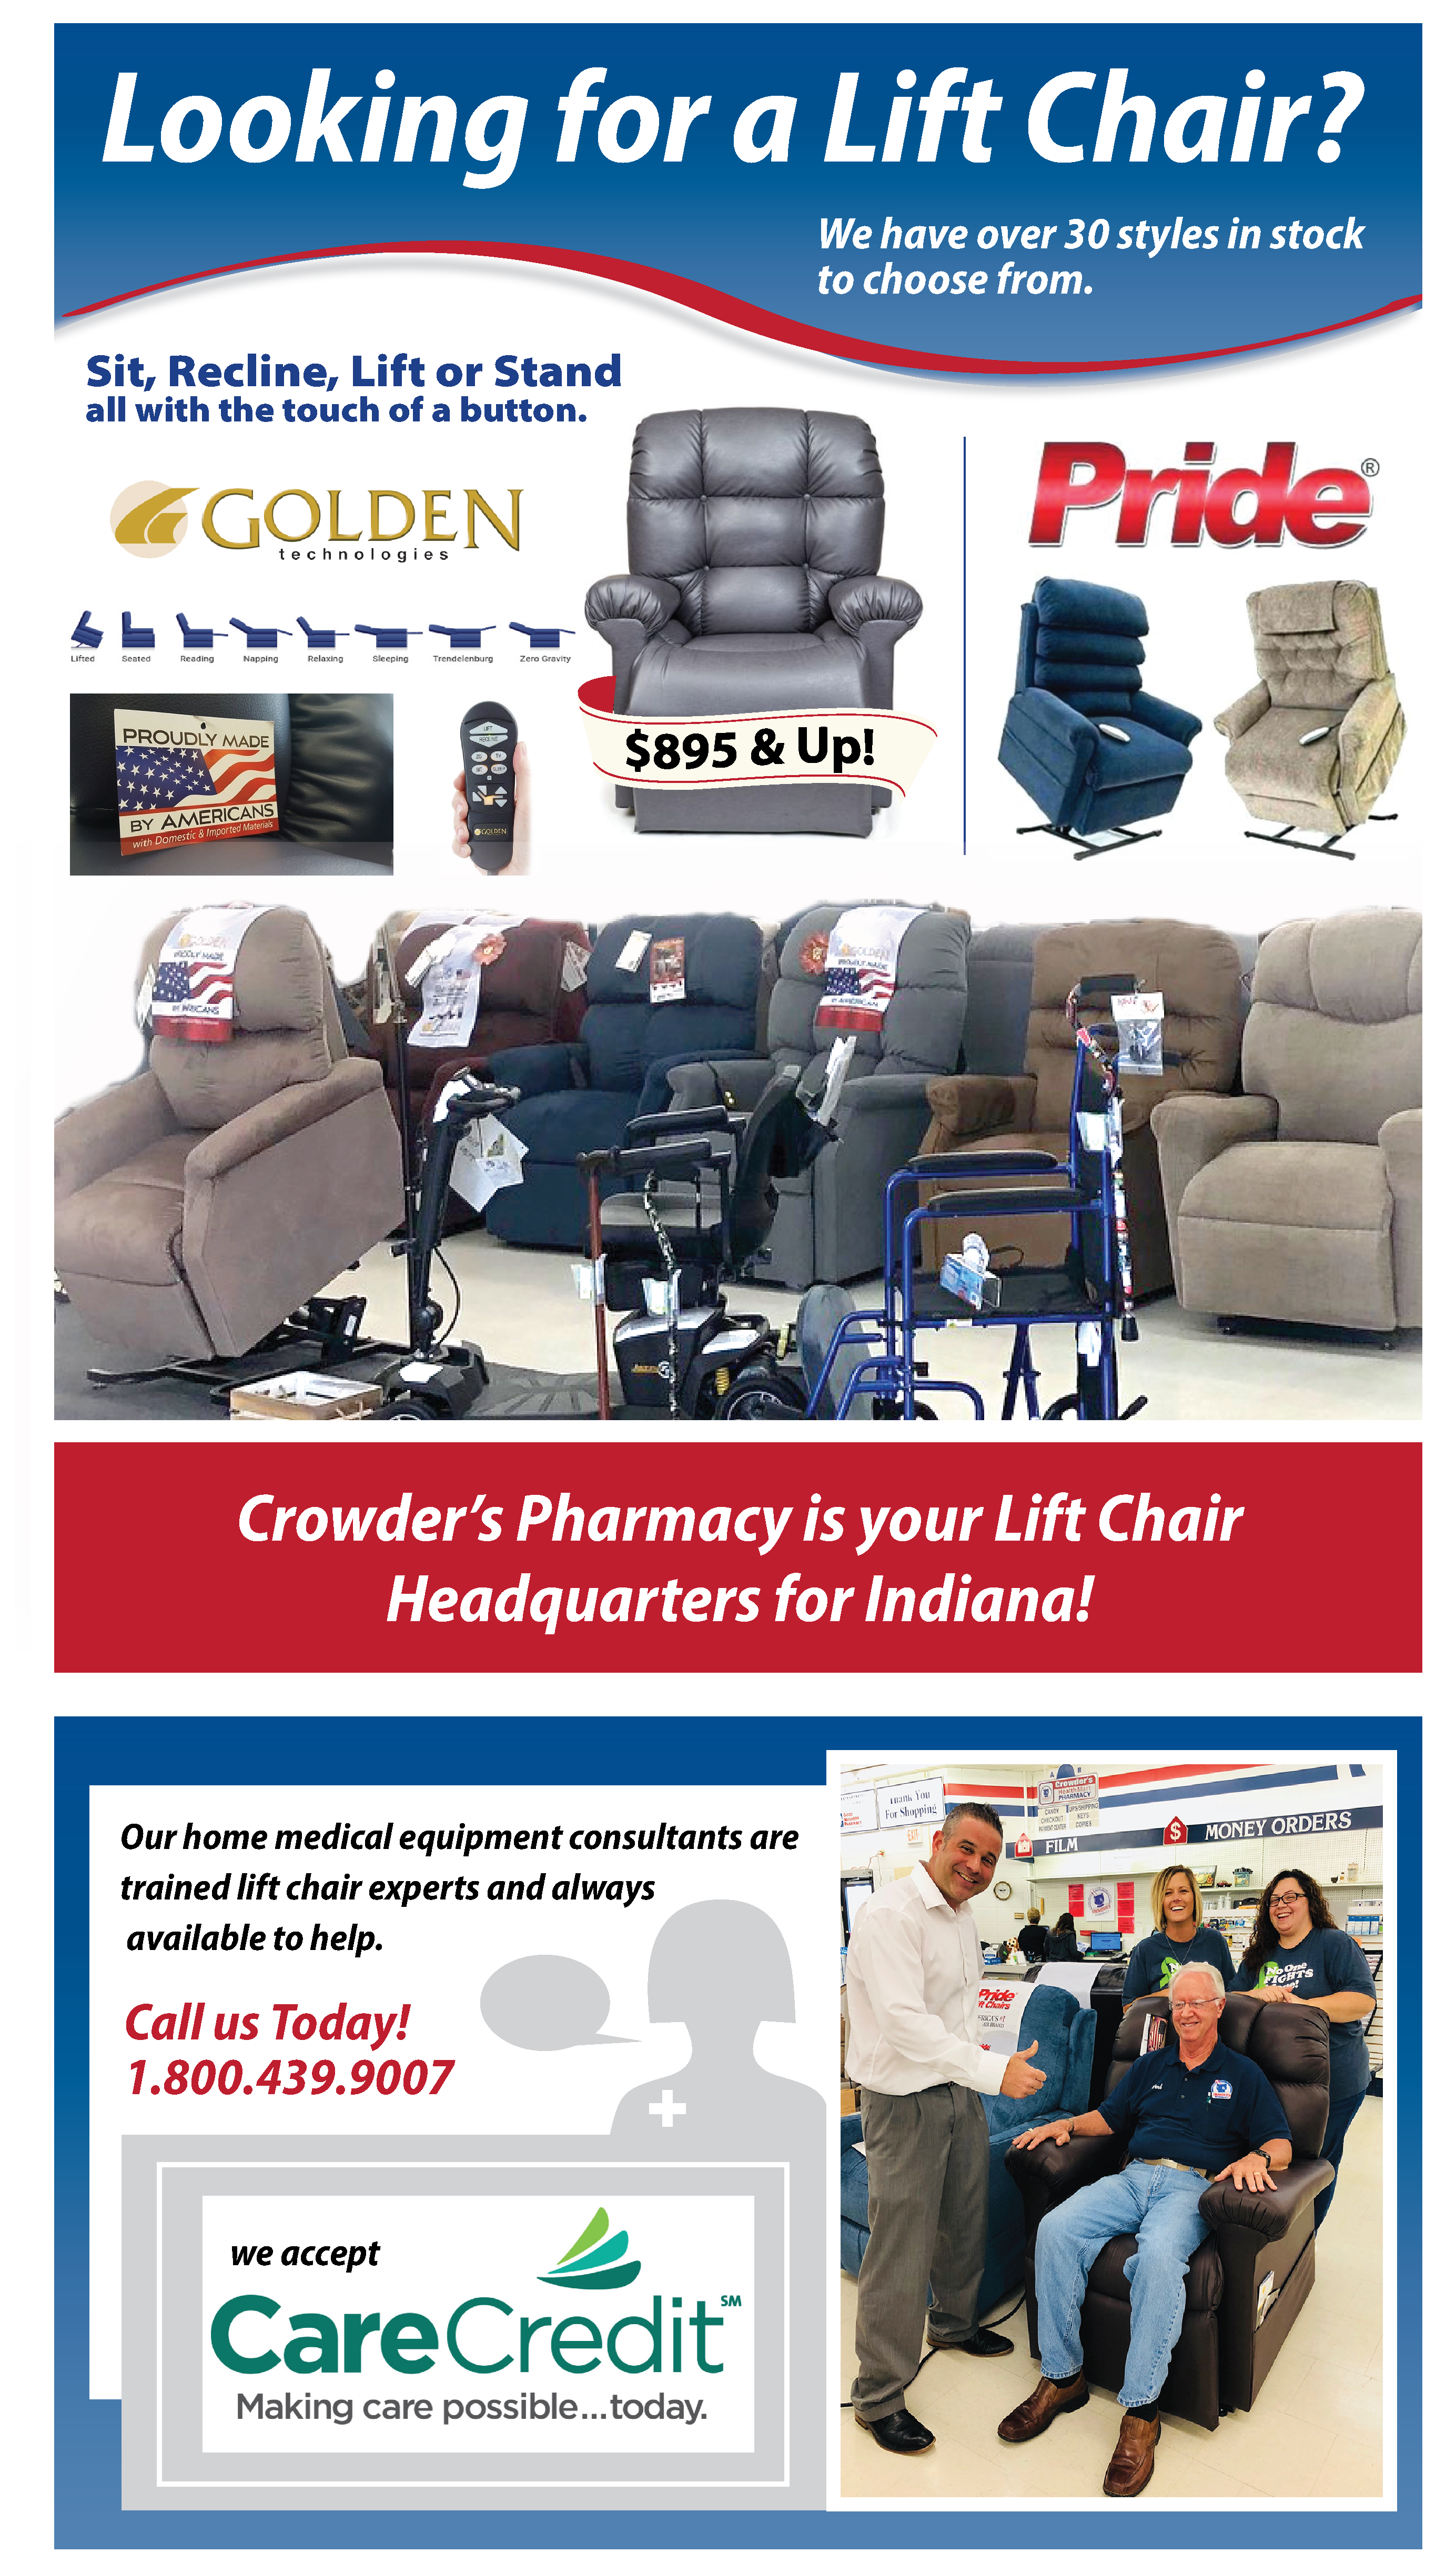 Lift Chairs Crowder's Pharmacy Bedford, IN (800) 439-9007